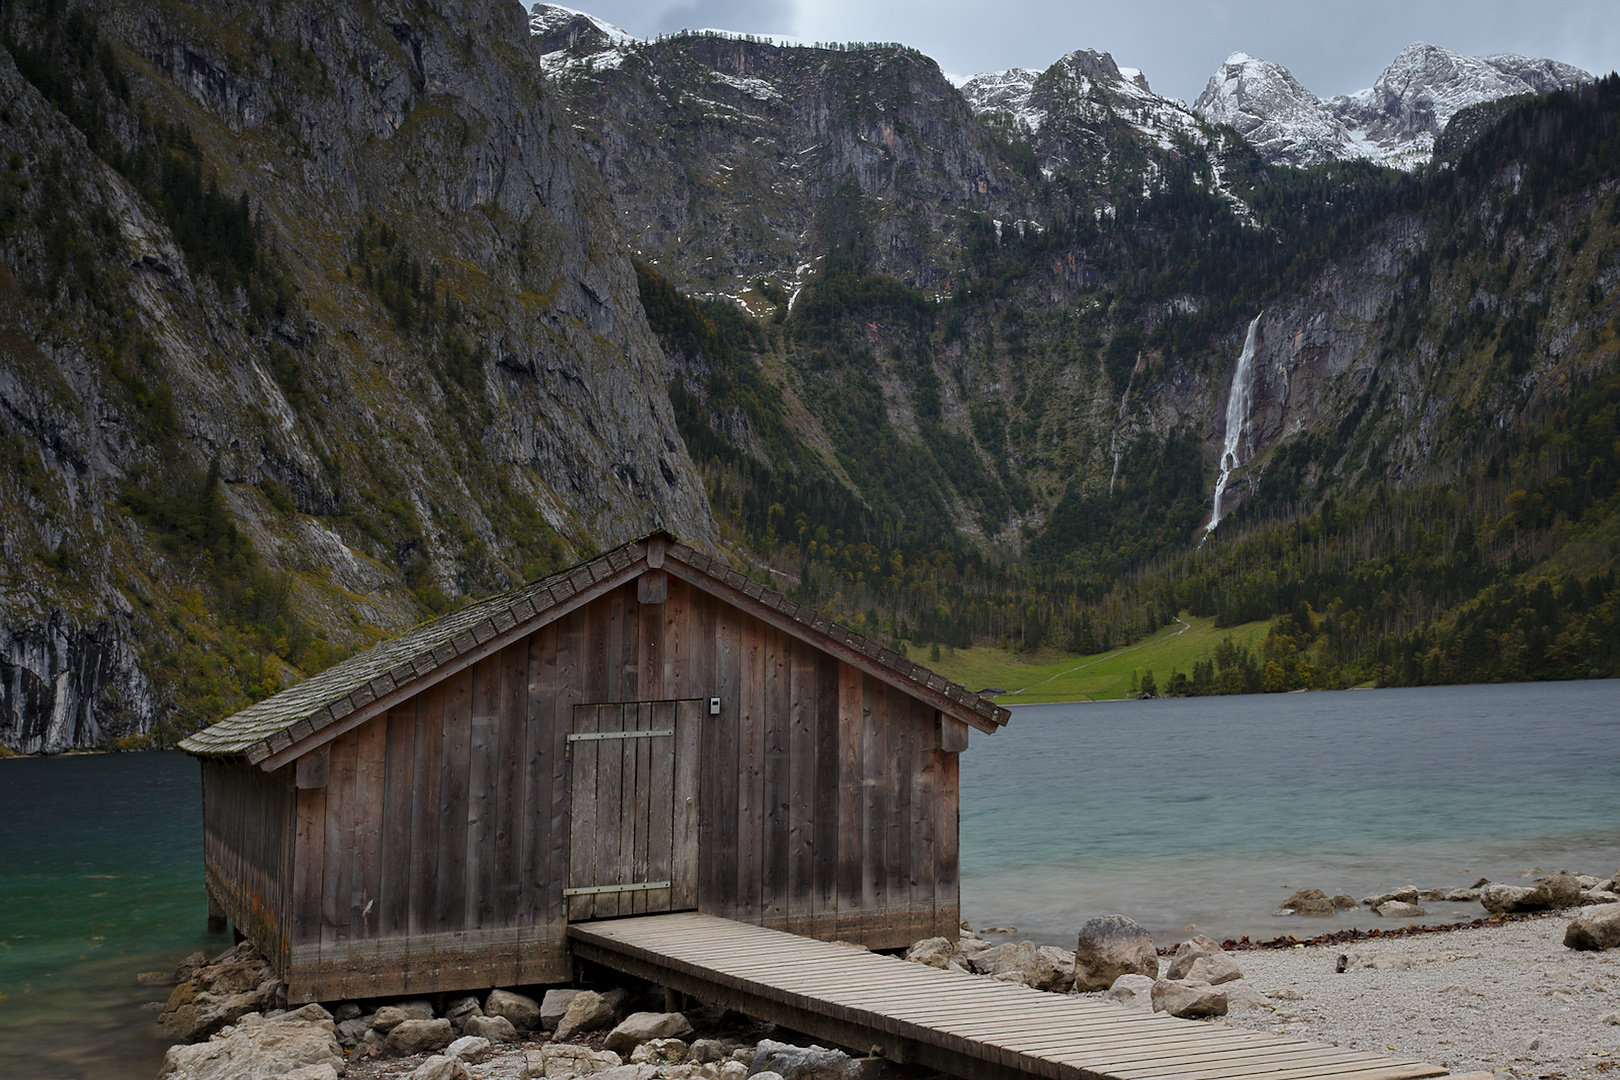 Boathouse at Obersee, Germany